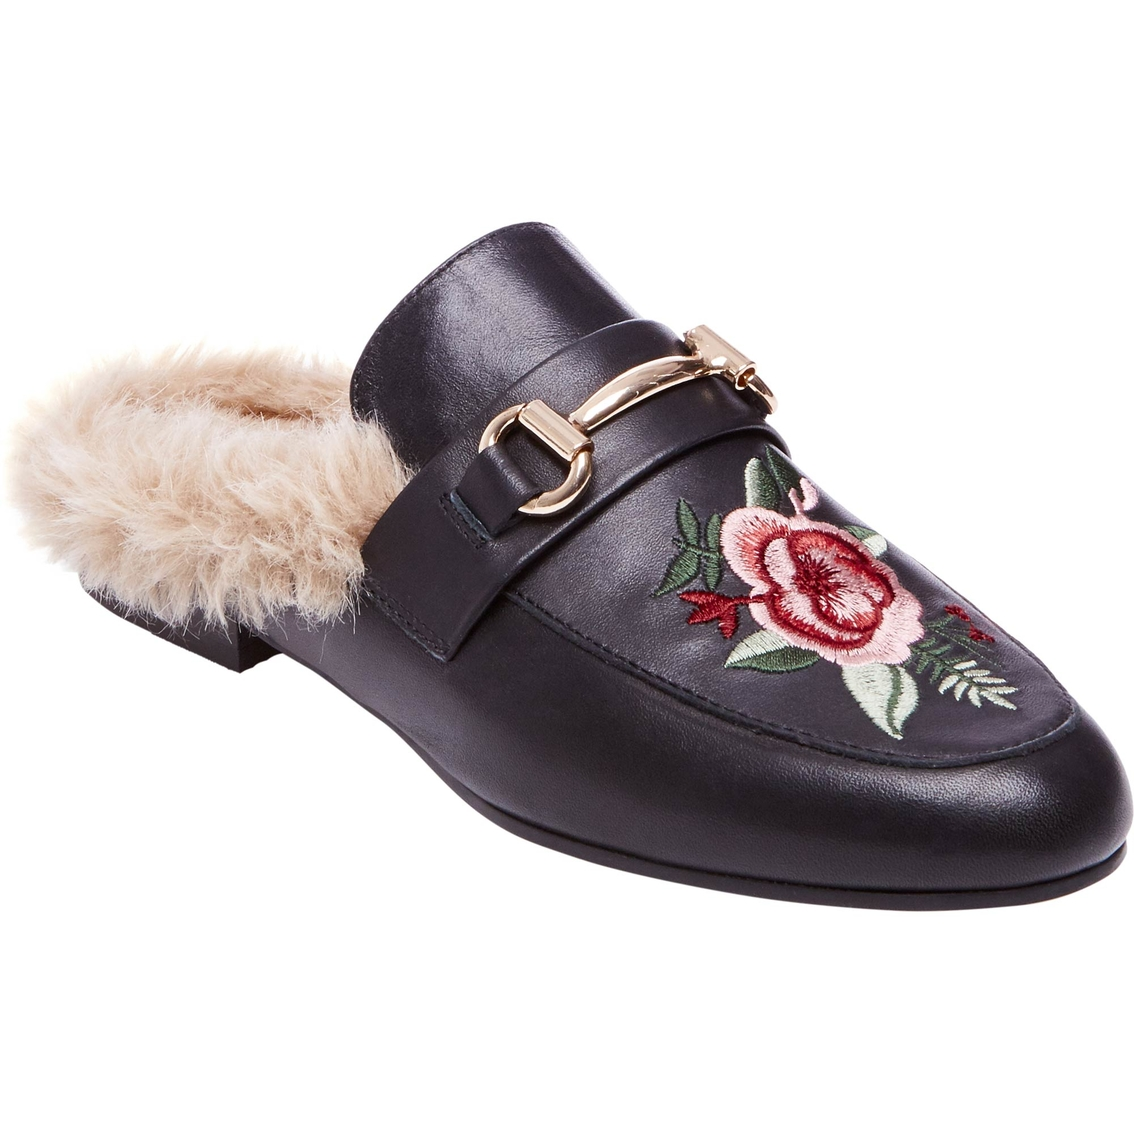 Steve Madden Jill Floral Patch Mule With Faux Fur